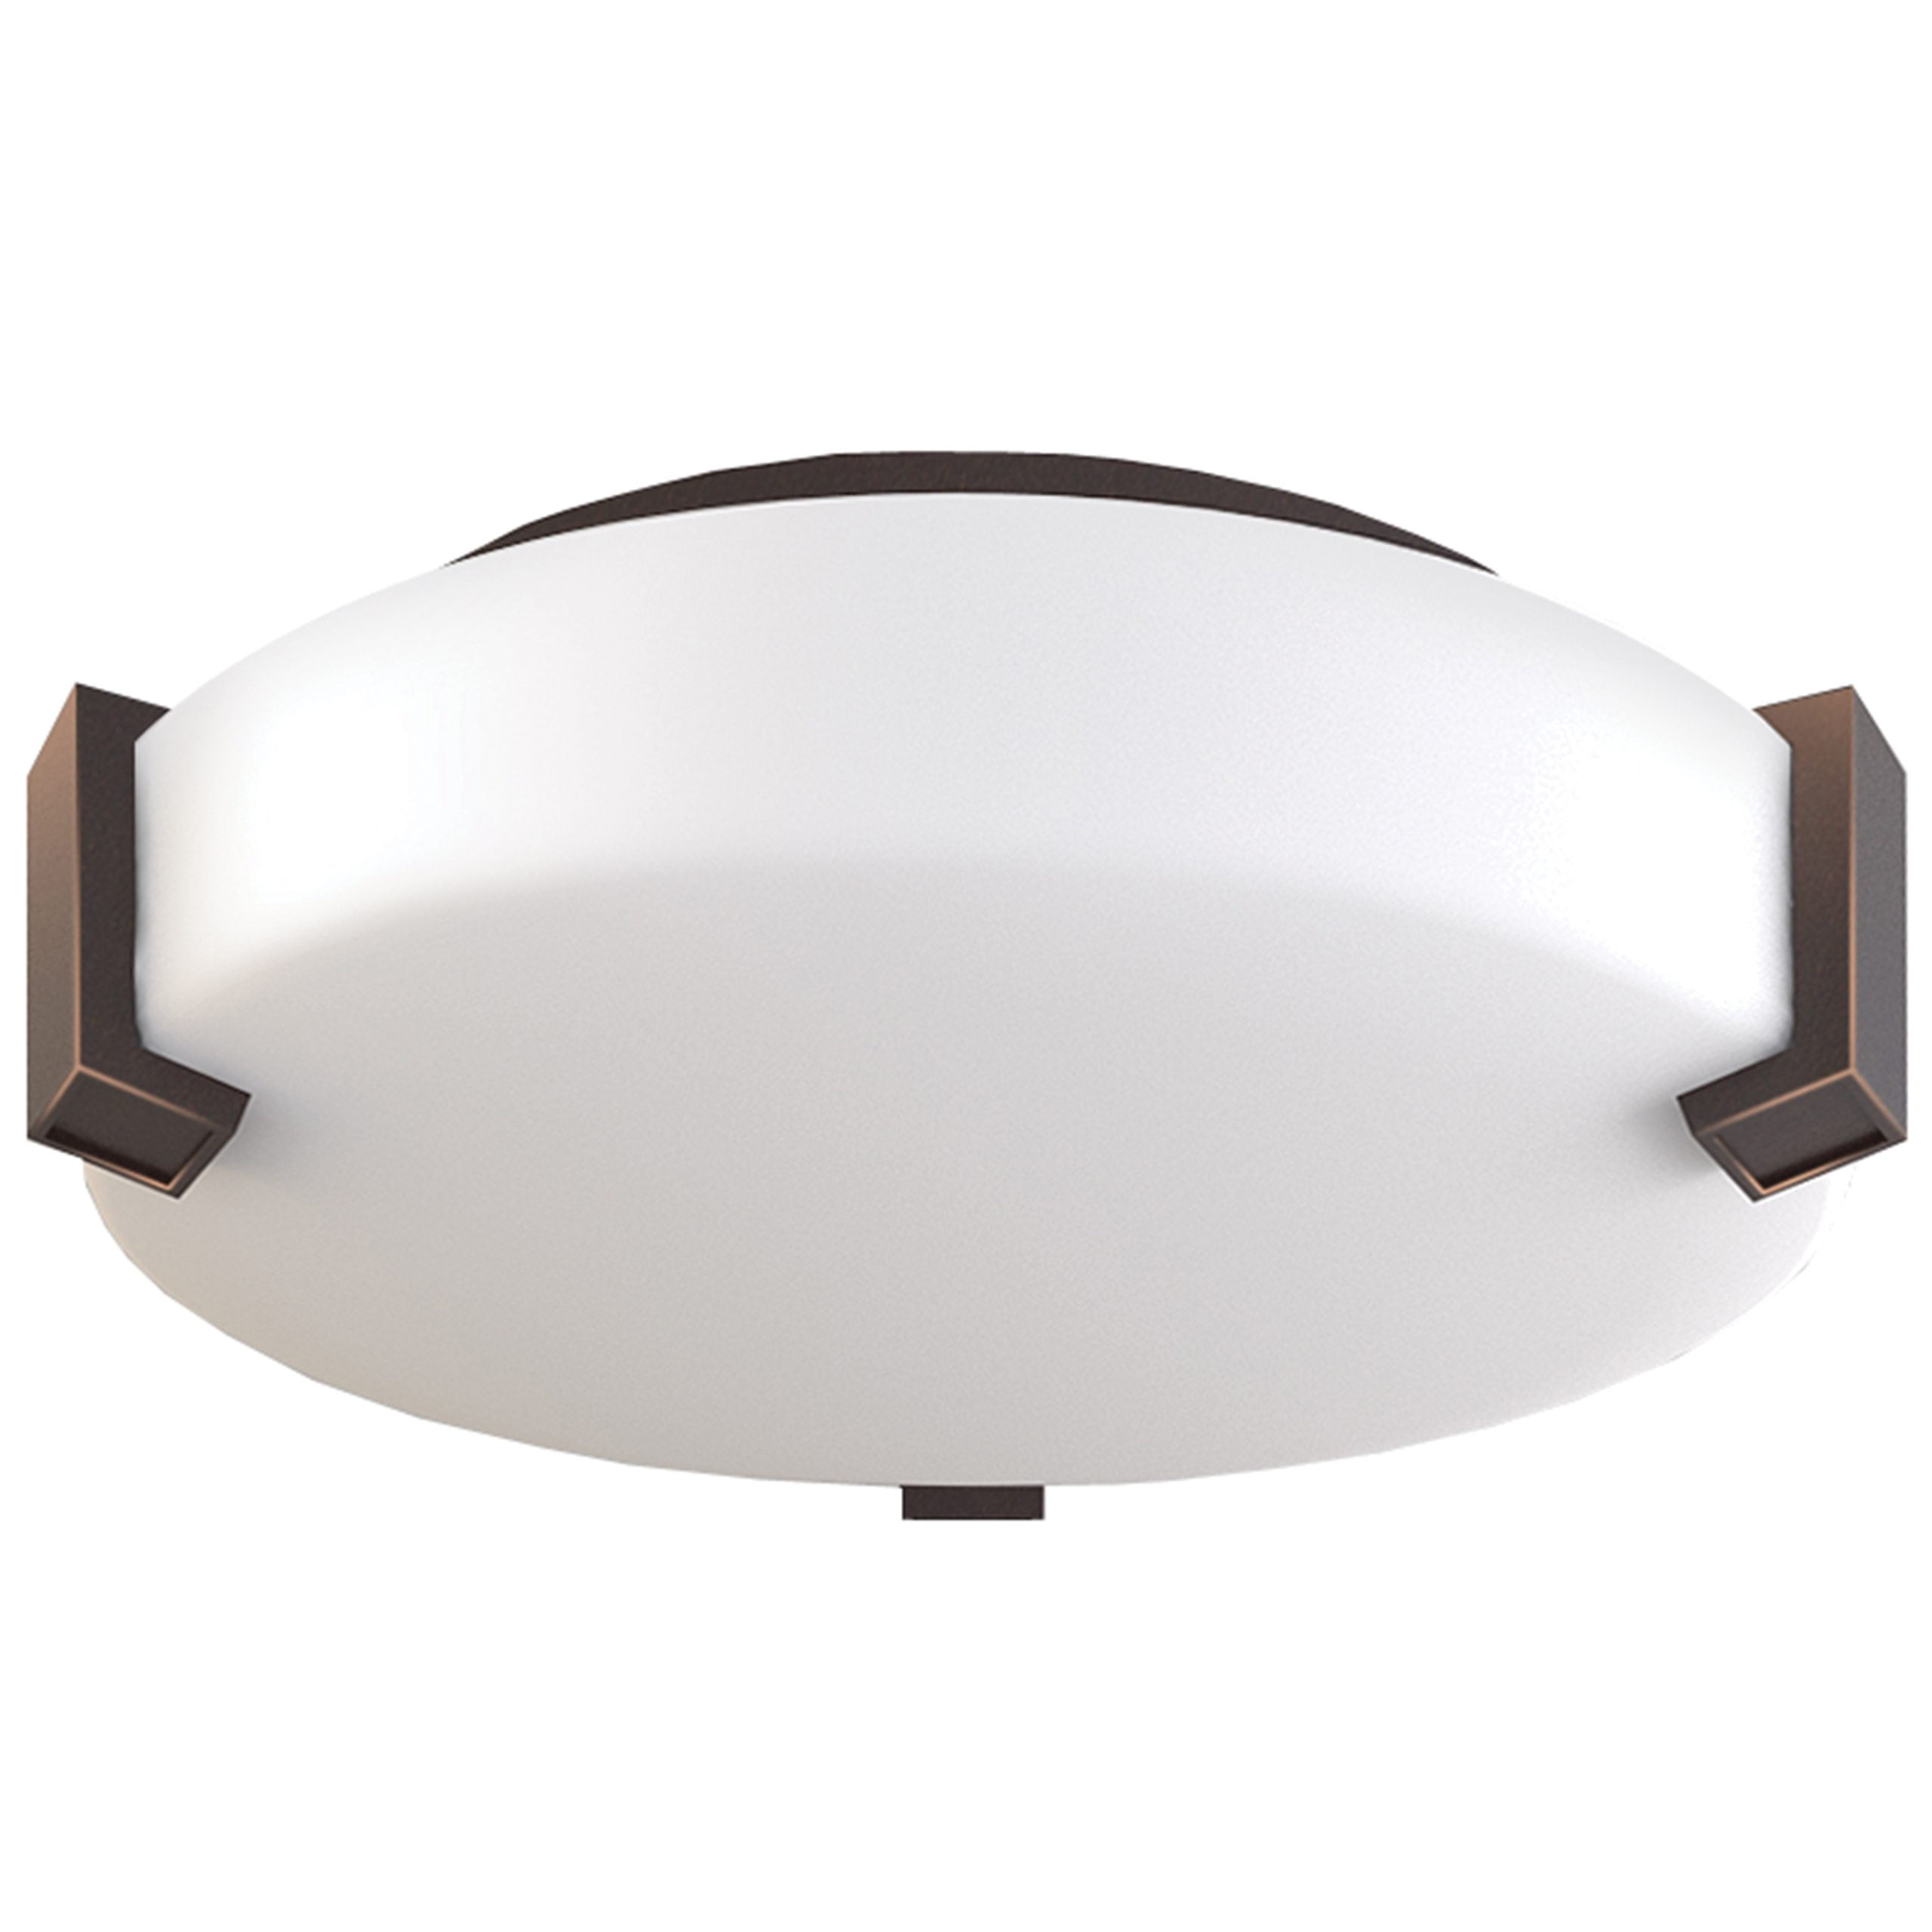 "12""W Dark Bronze Ceiling Light with Frosted Acrylic Shade"